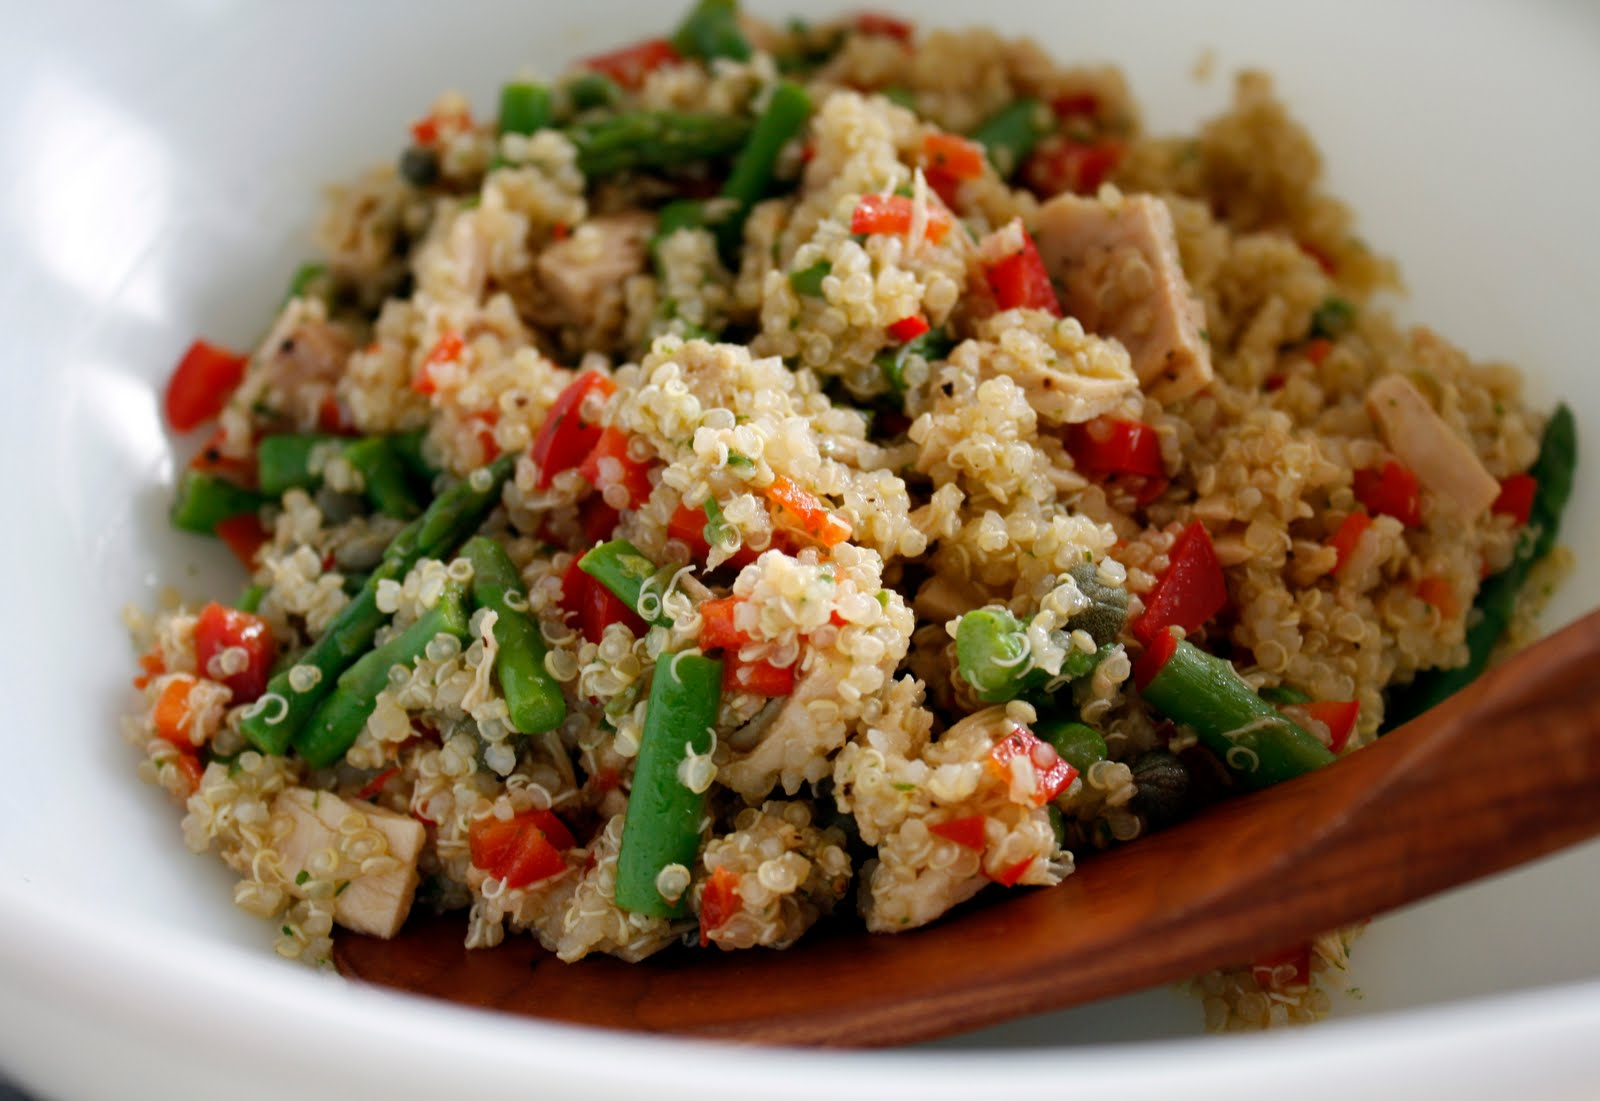 Tuna and quinoa lunch meal